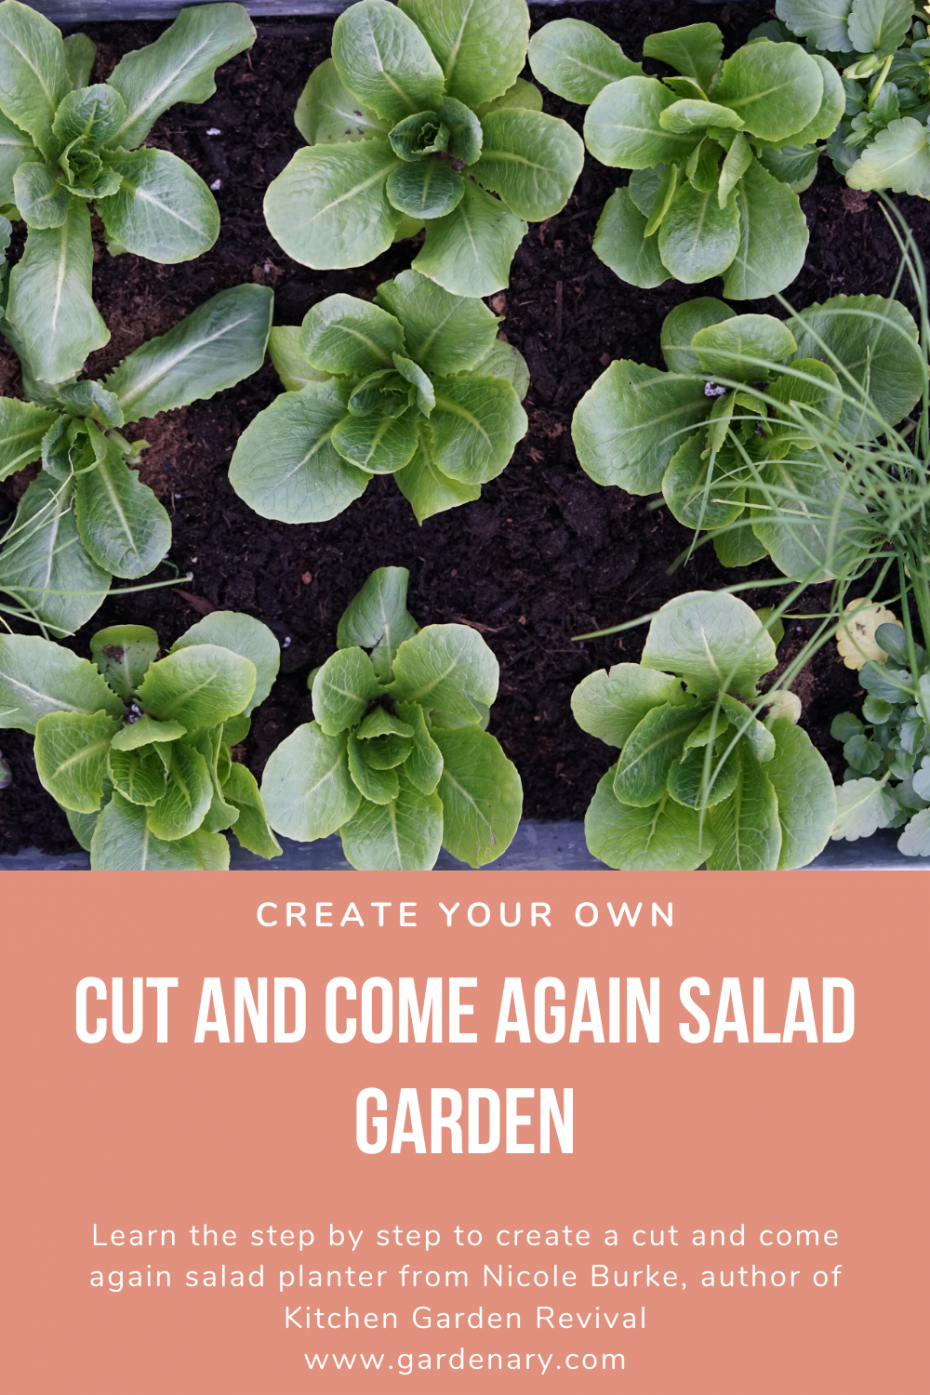 create your own cut and come again salad garden from Nicole Burke author of Kitchen Garden Revival